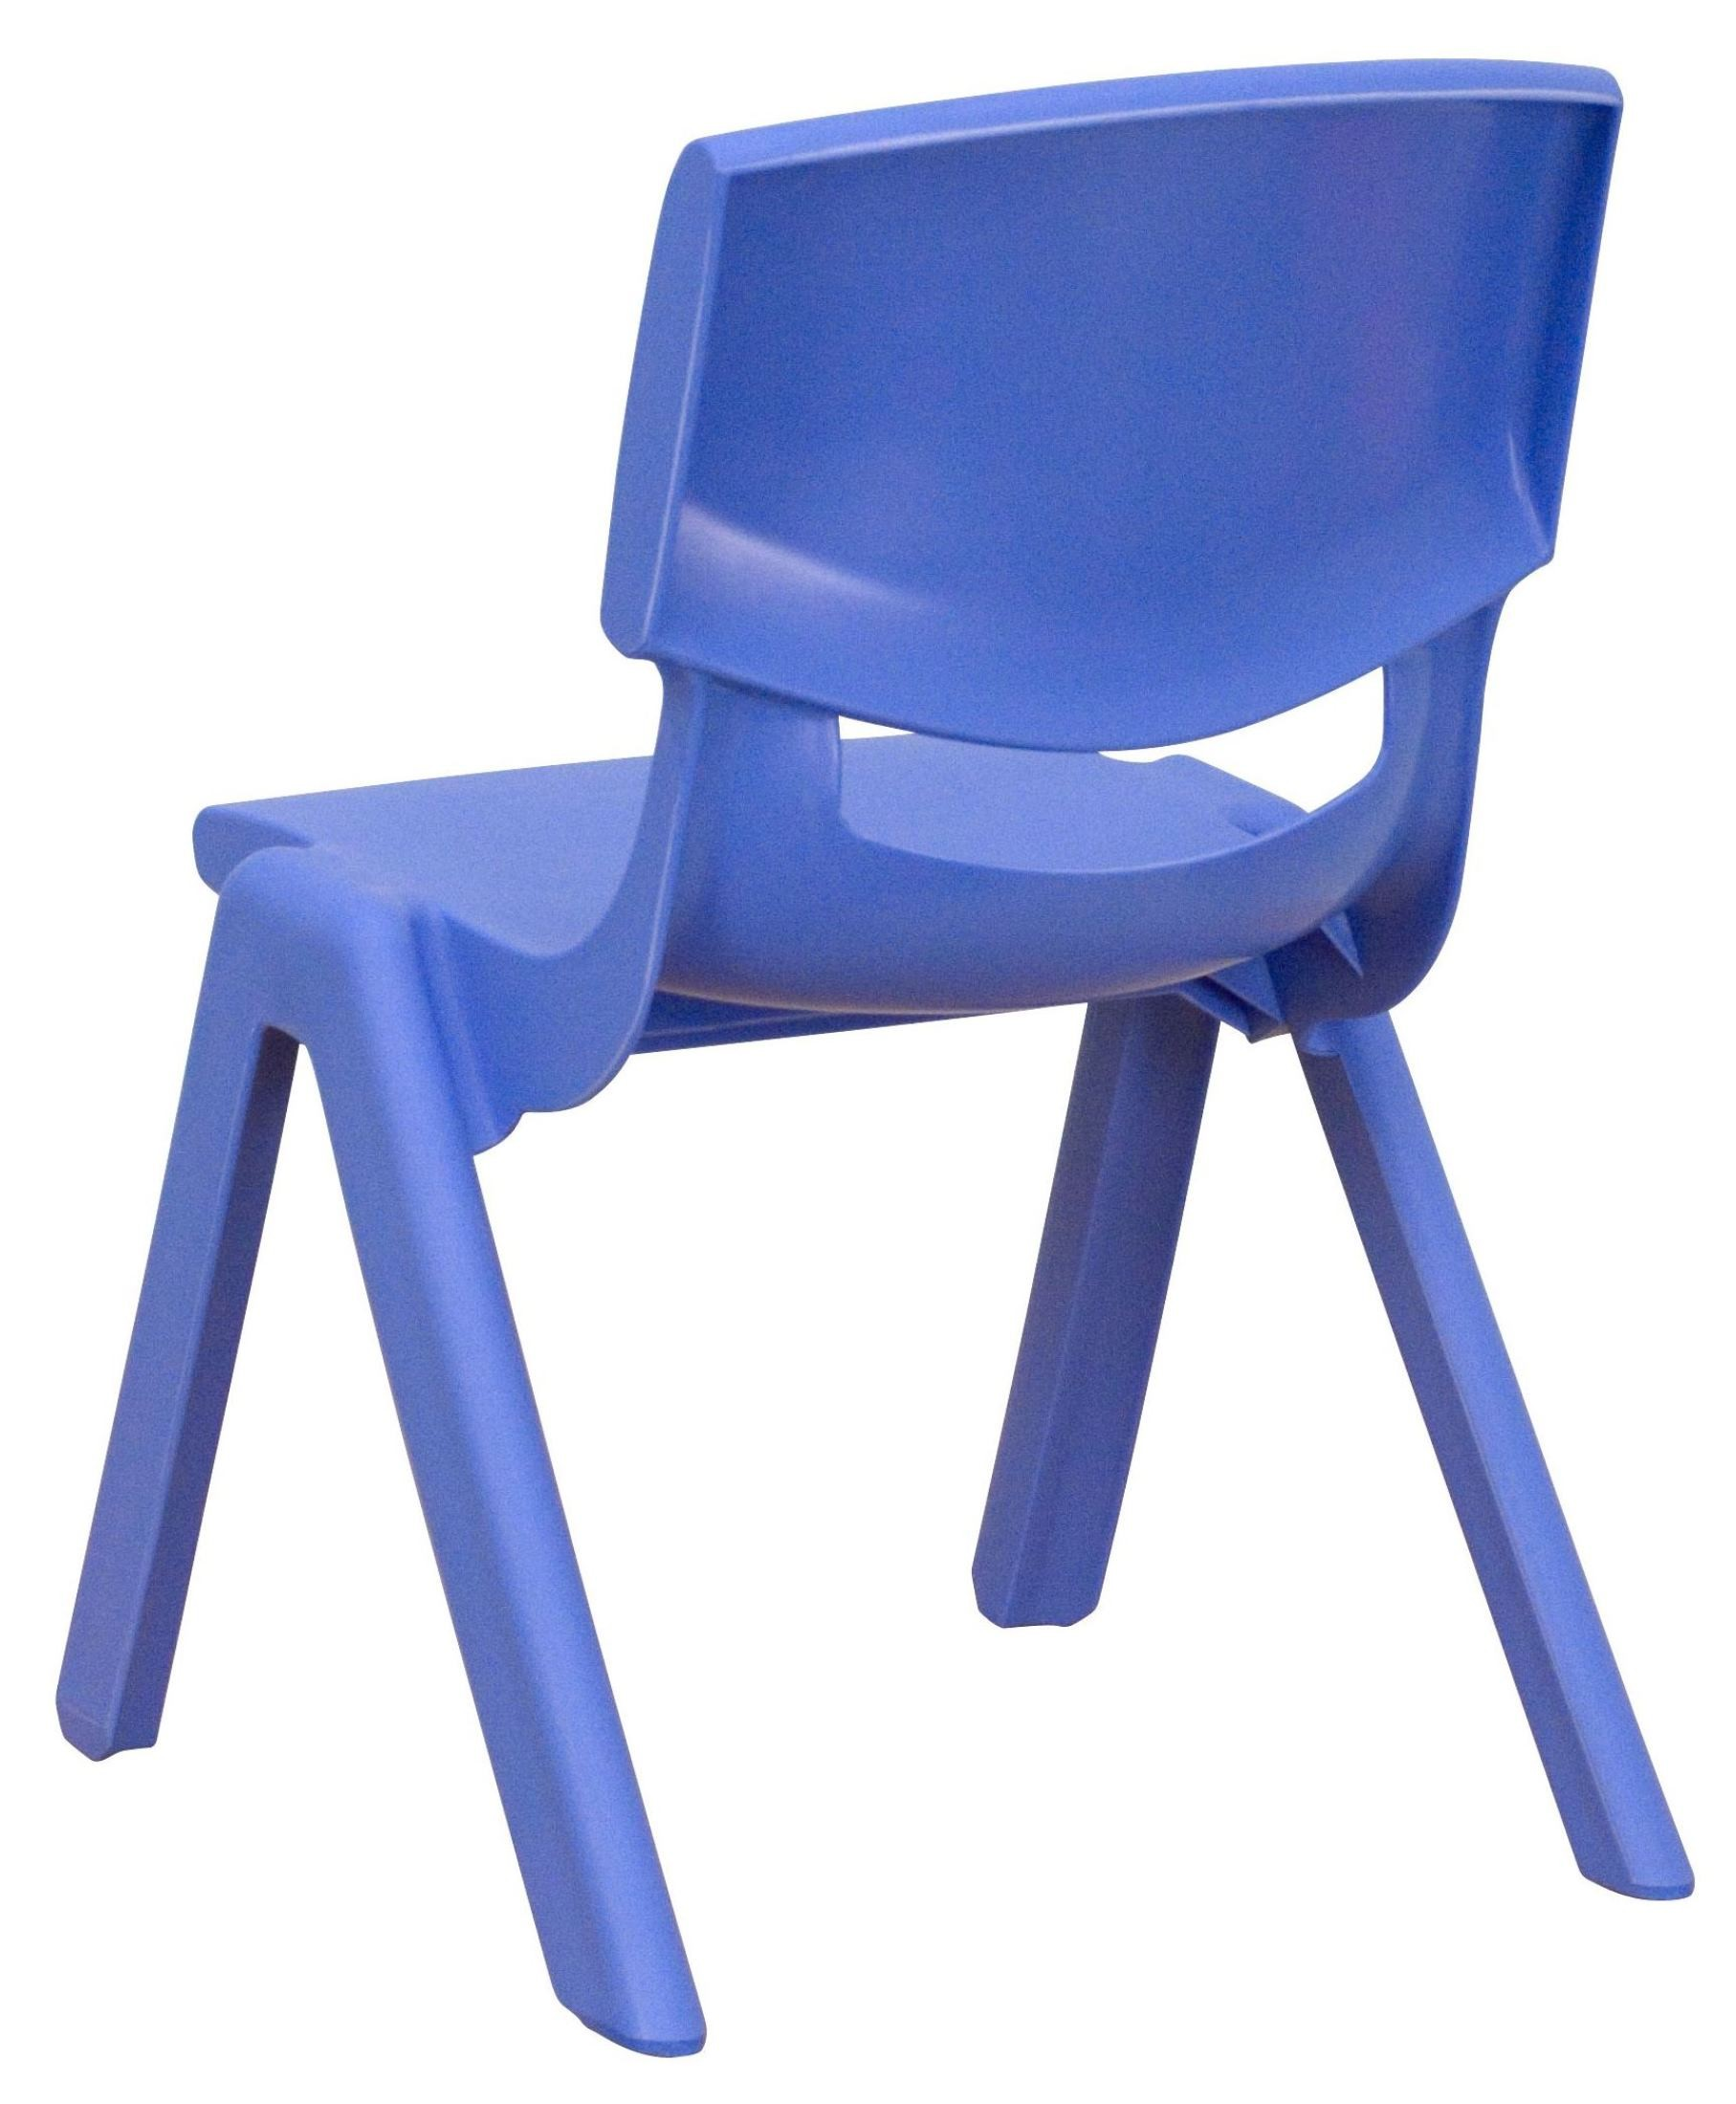 20 h blue plastic stackable school chair from renegade yu